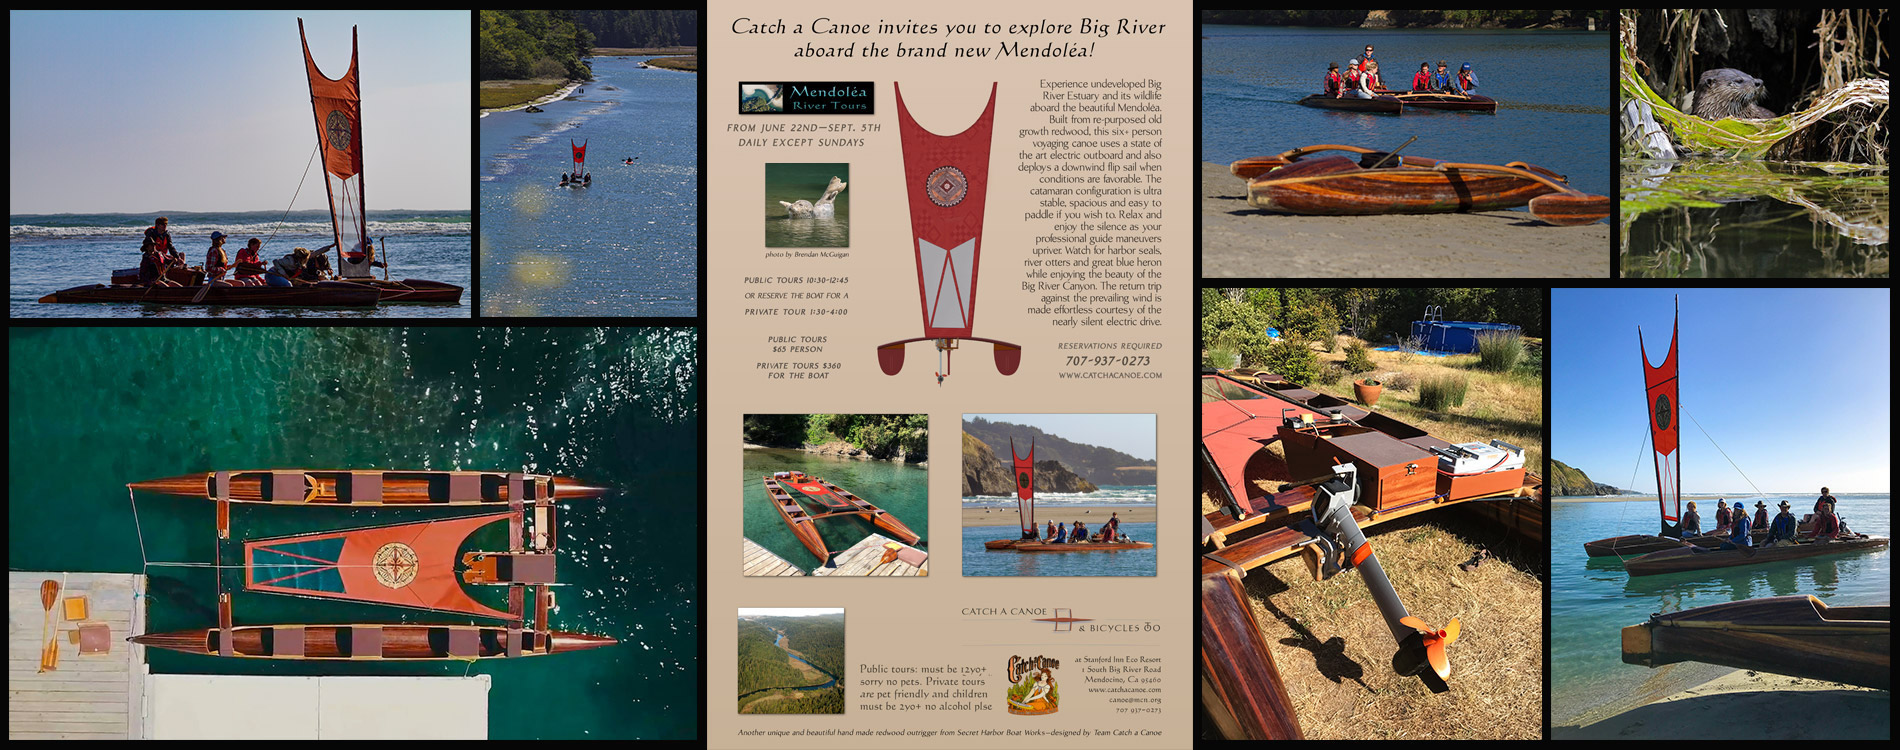 catch a canoe guided tour artwork